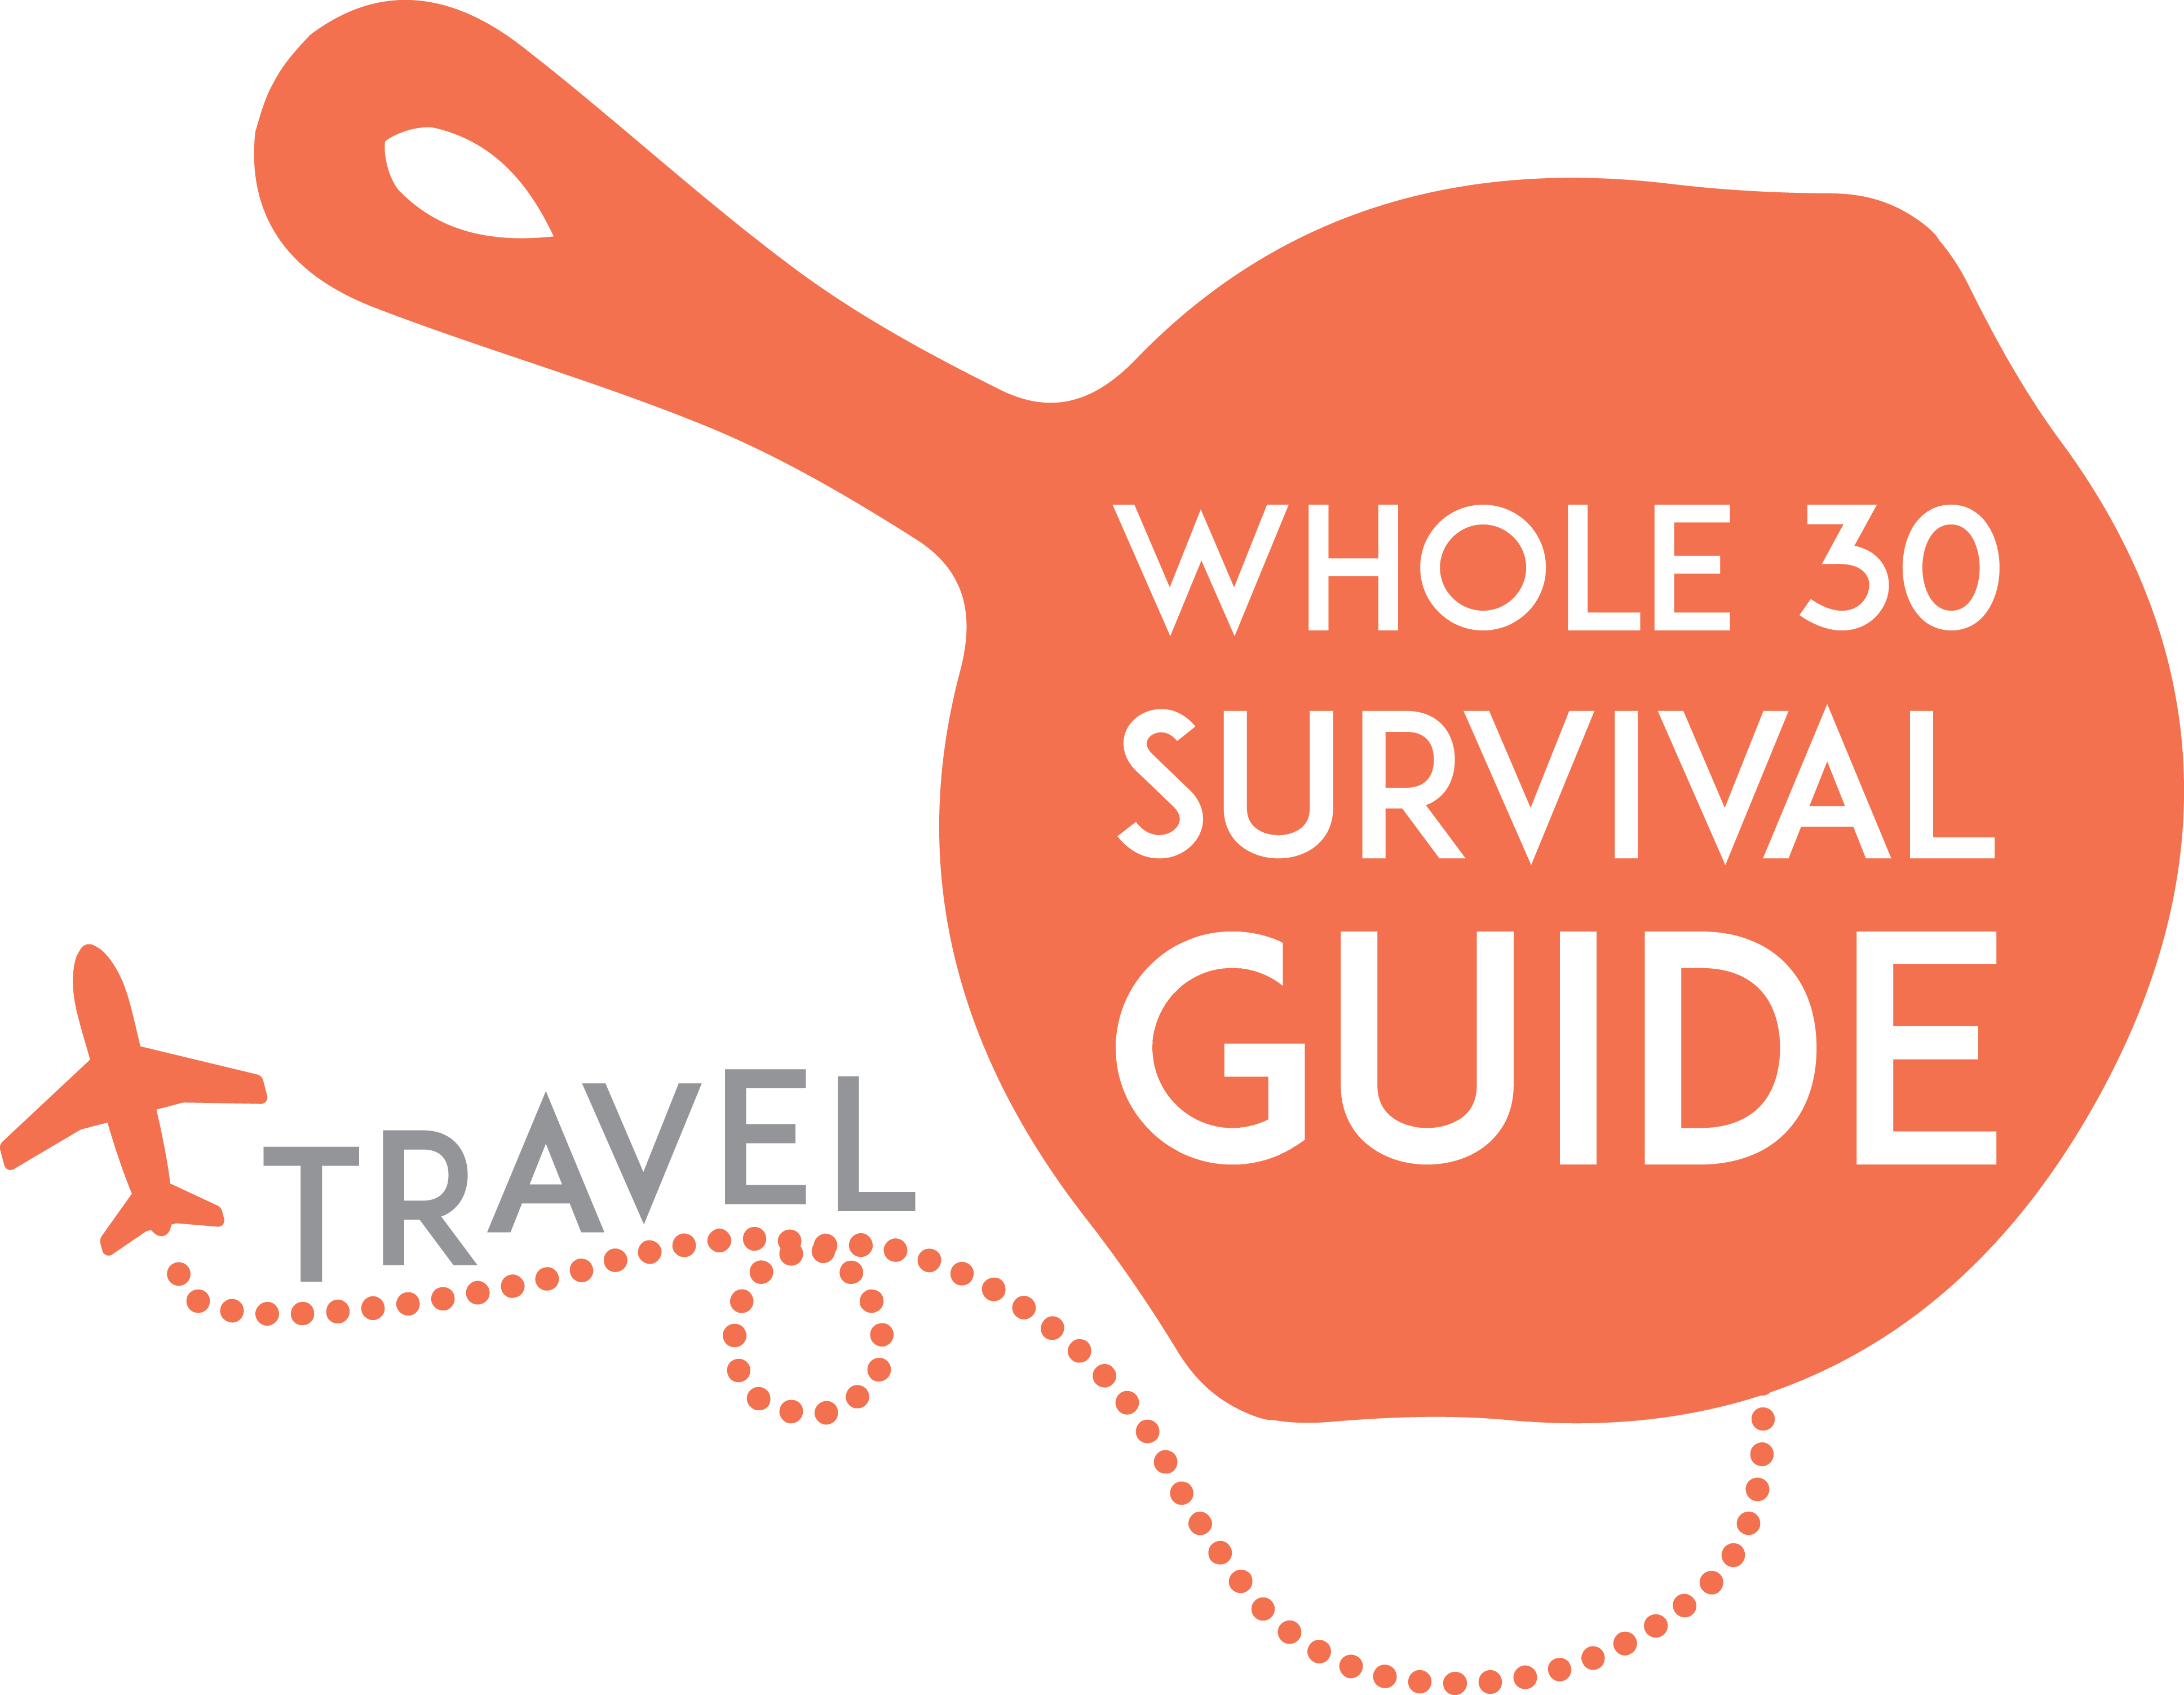 Real Talk Whole30 Survival Guide: Travel